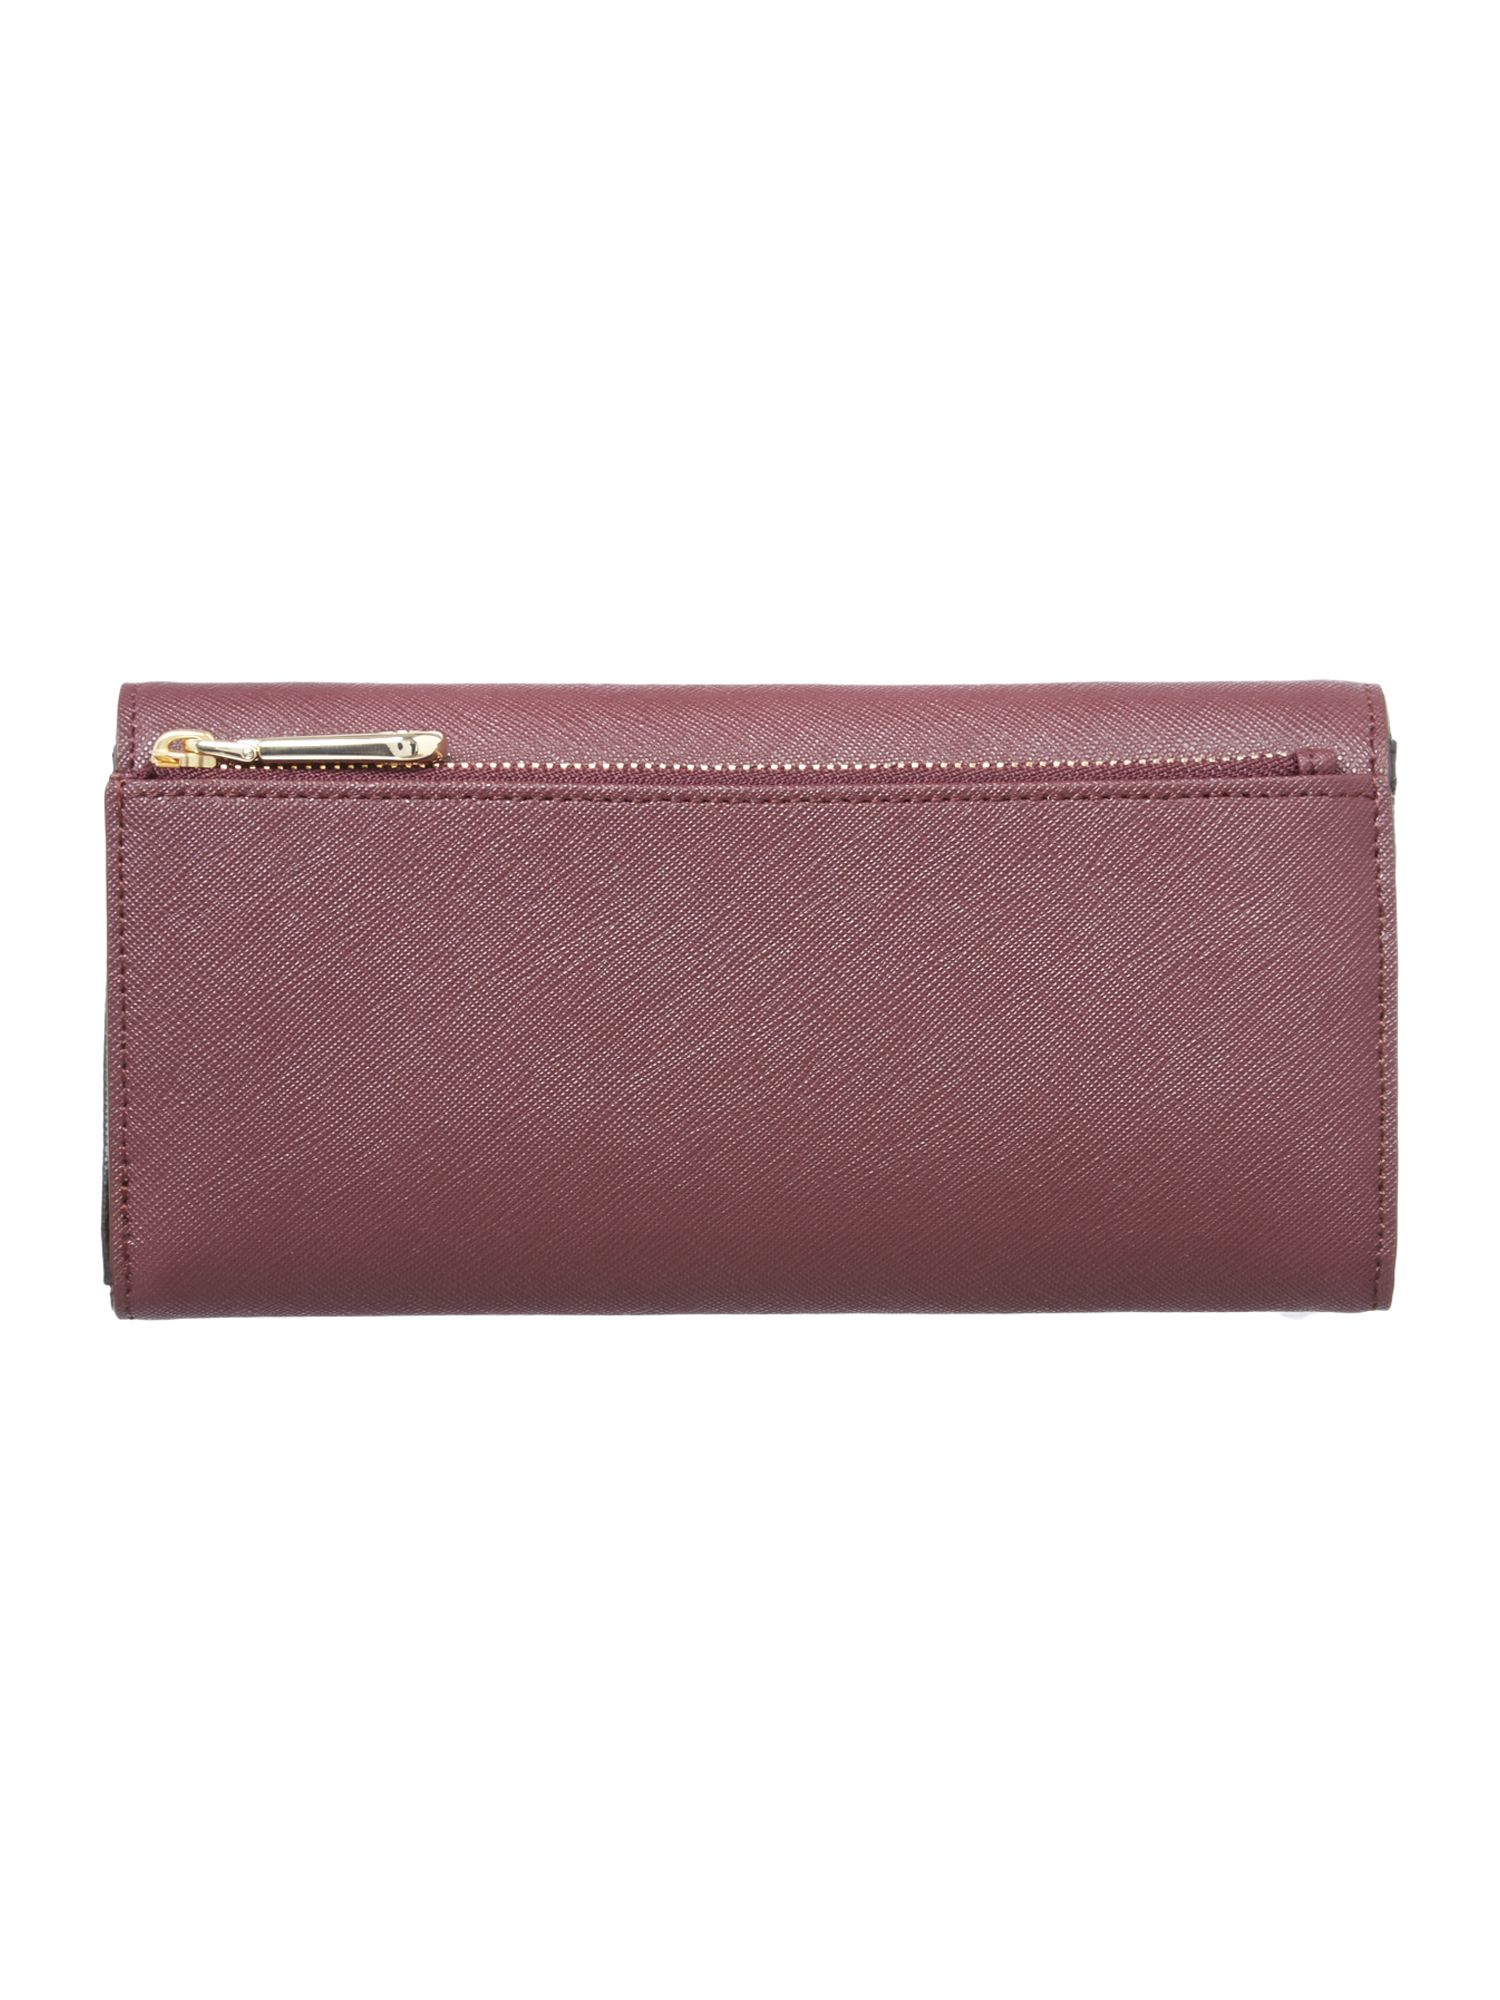 Bryant park multi-coloured large flap over purse